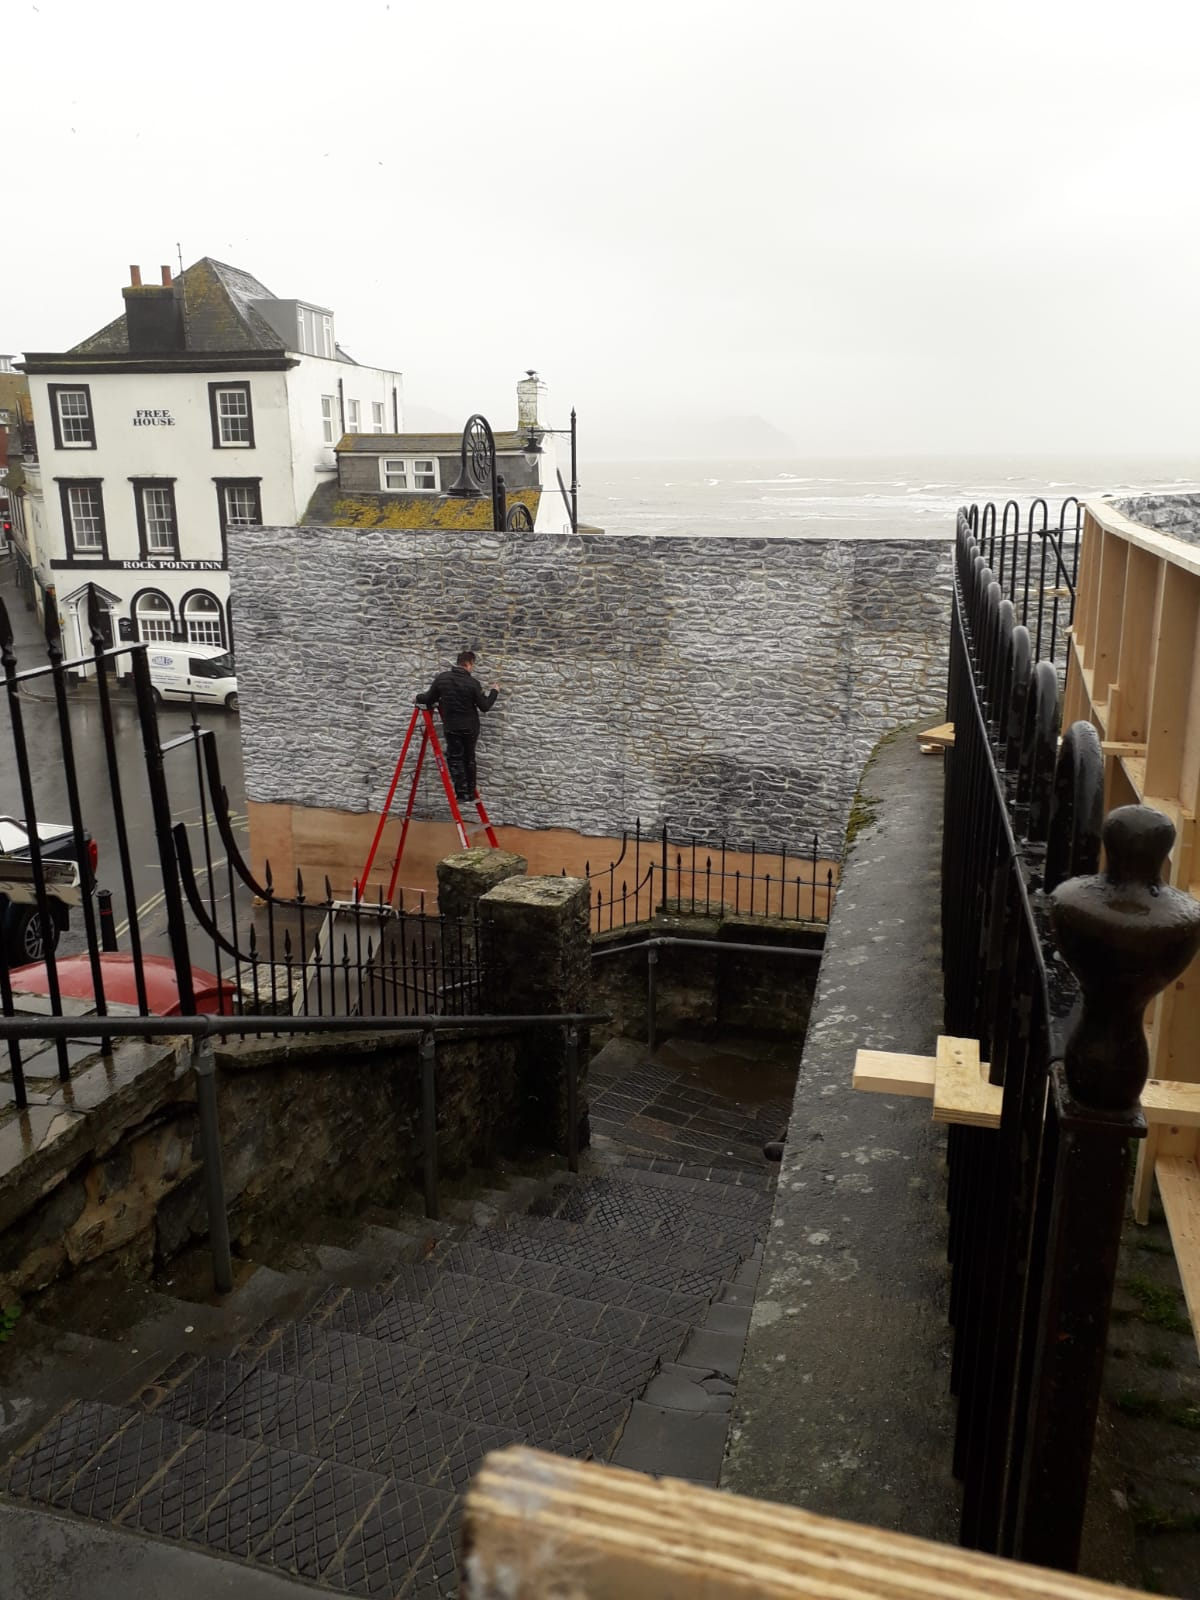 Exciting Happenings at nearby Lyme Regis